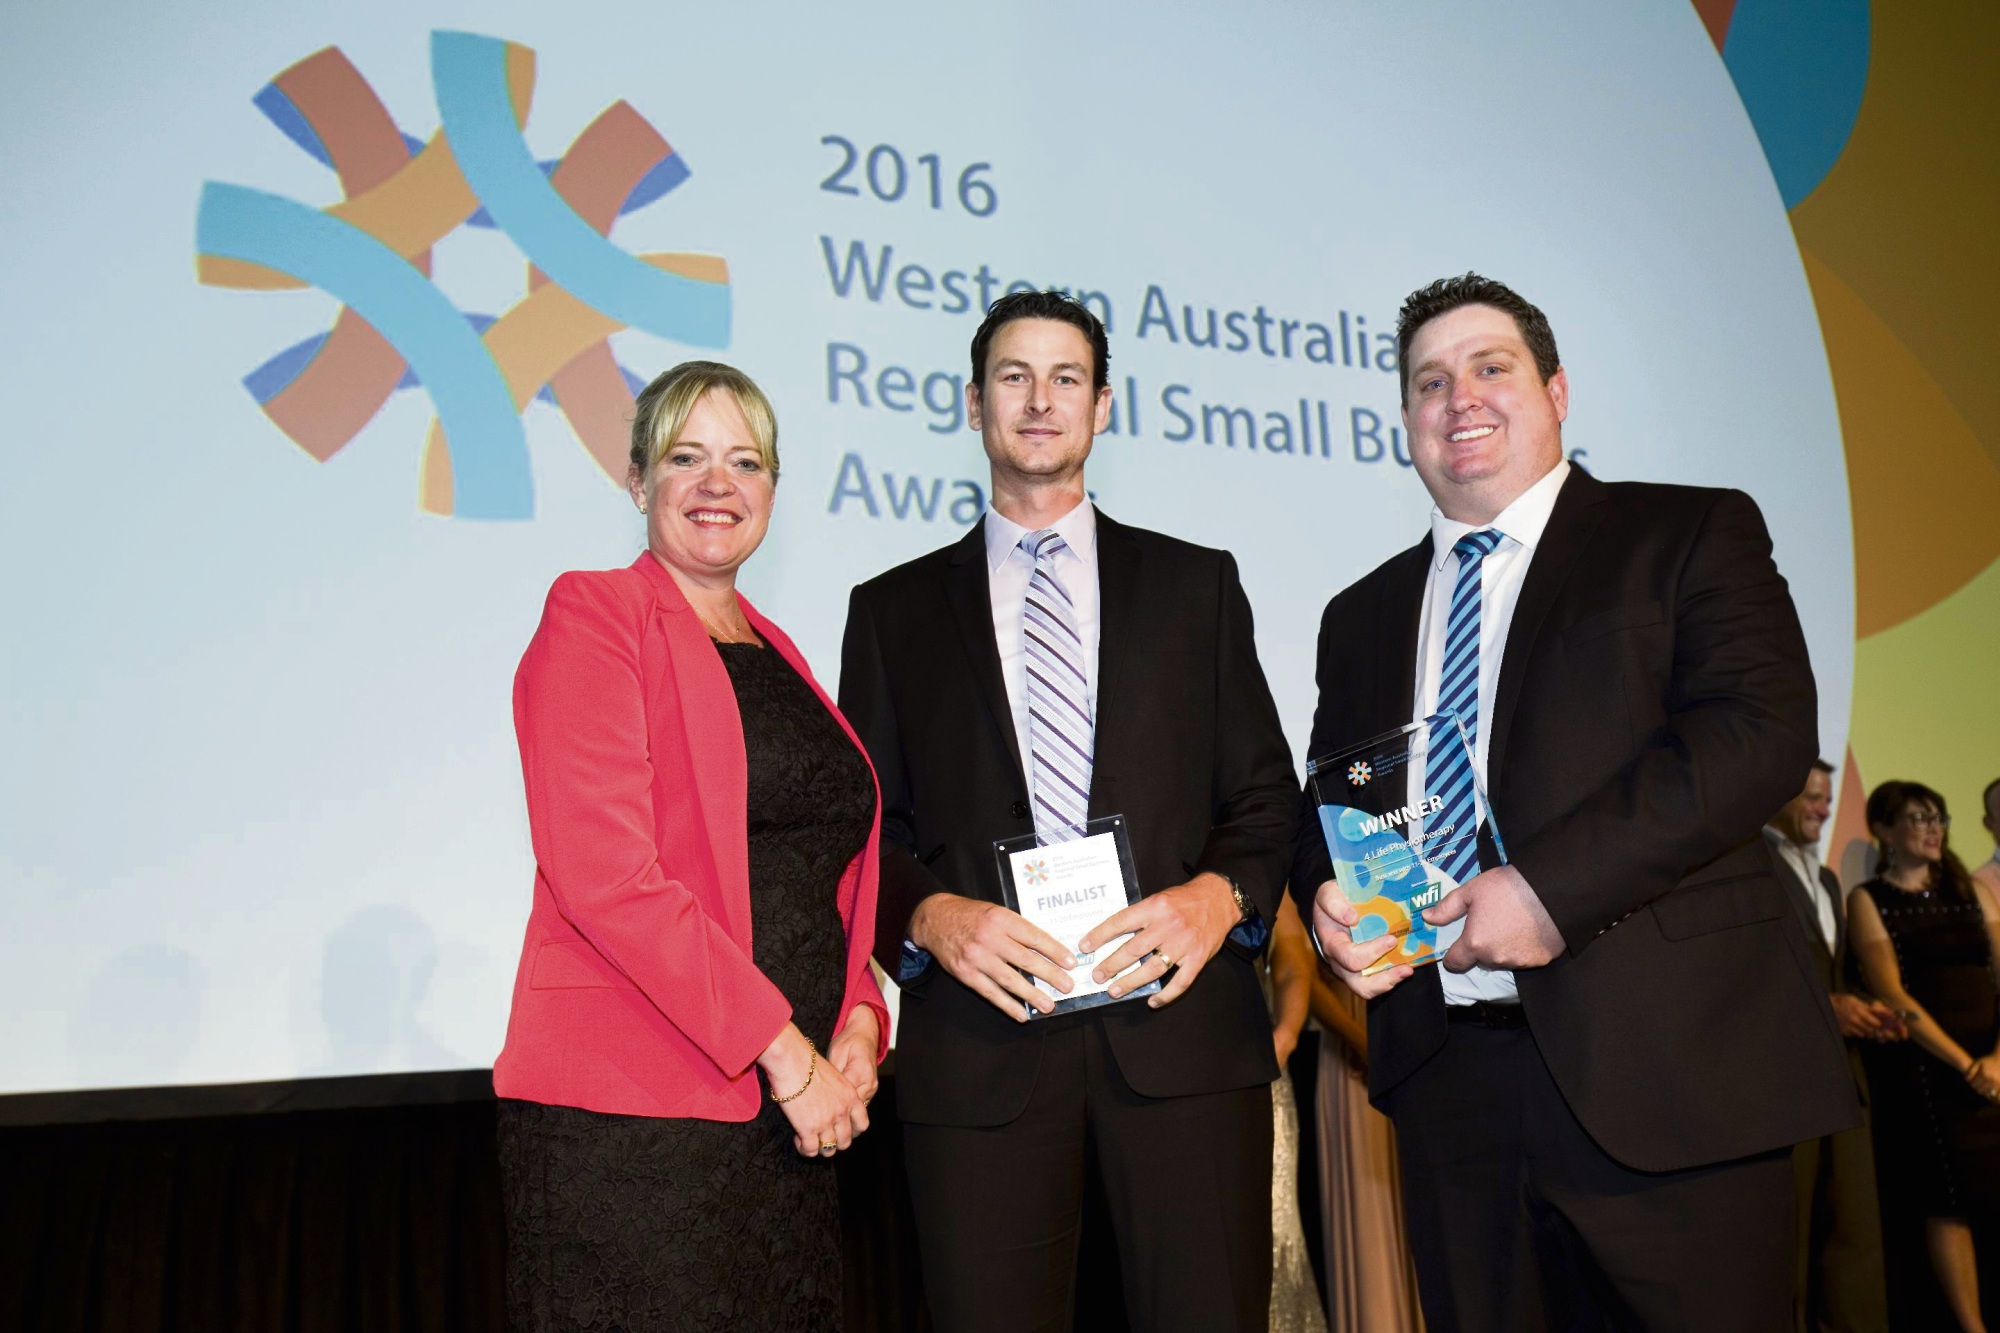 Mandurah's 4 Life Physio wins WA Regional Small Business award